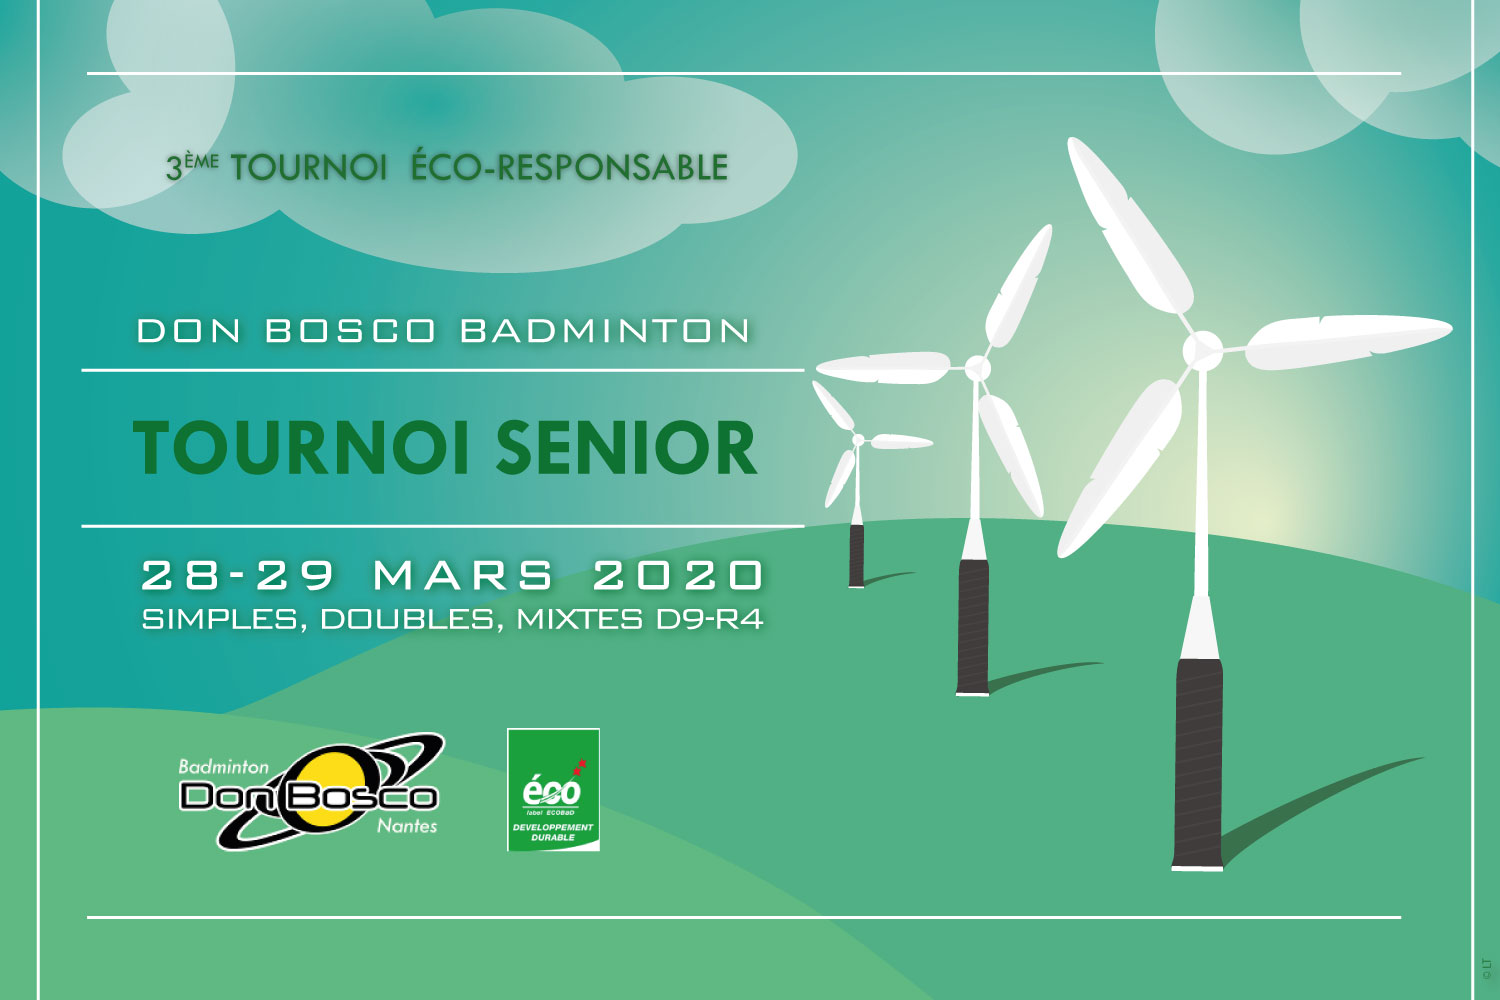 Tournoi senior badminton Don Bosco 2020